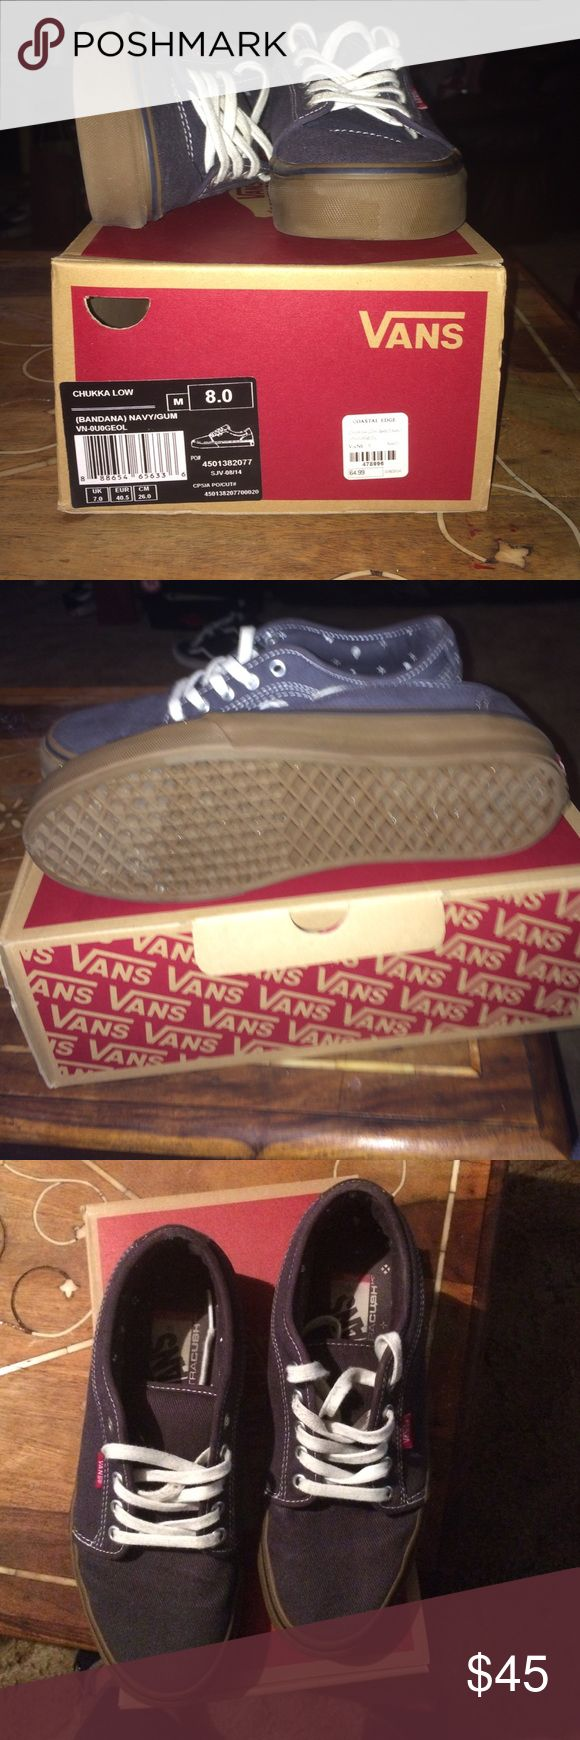 Vans CHUKKA LOW (BANDANA)  NAVY/GUM Worn x2 No scuffs.   Comes with box Vans Shoes Sneakers